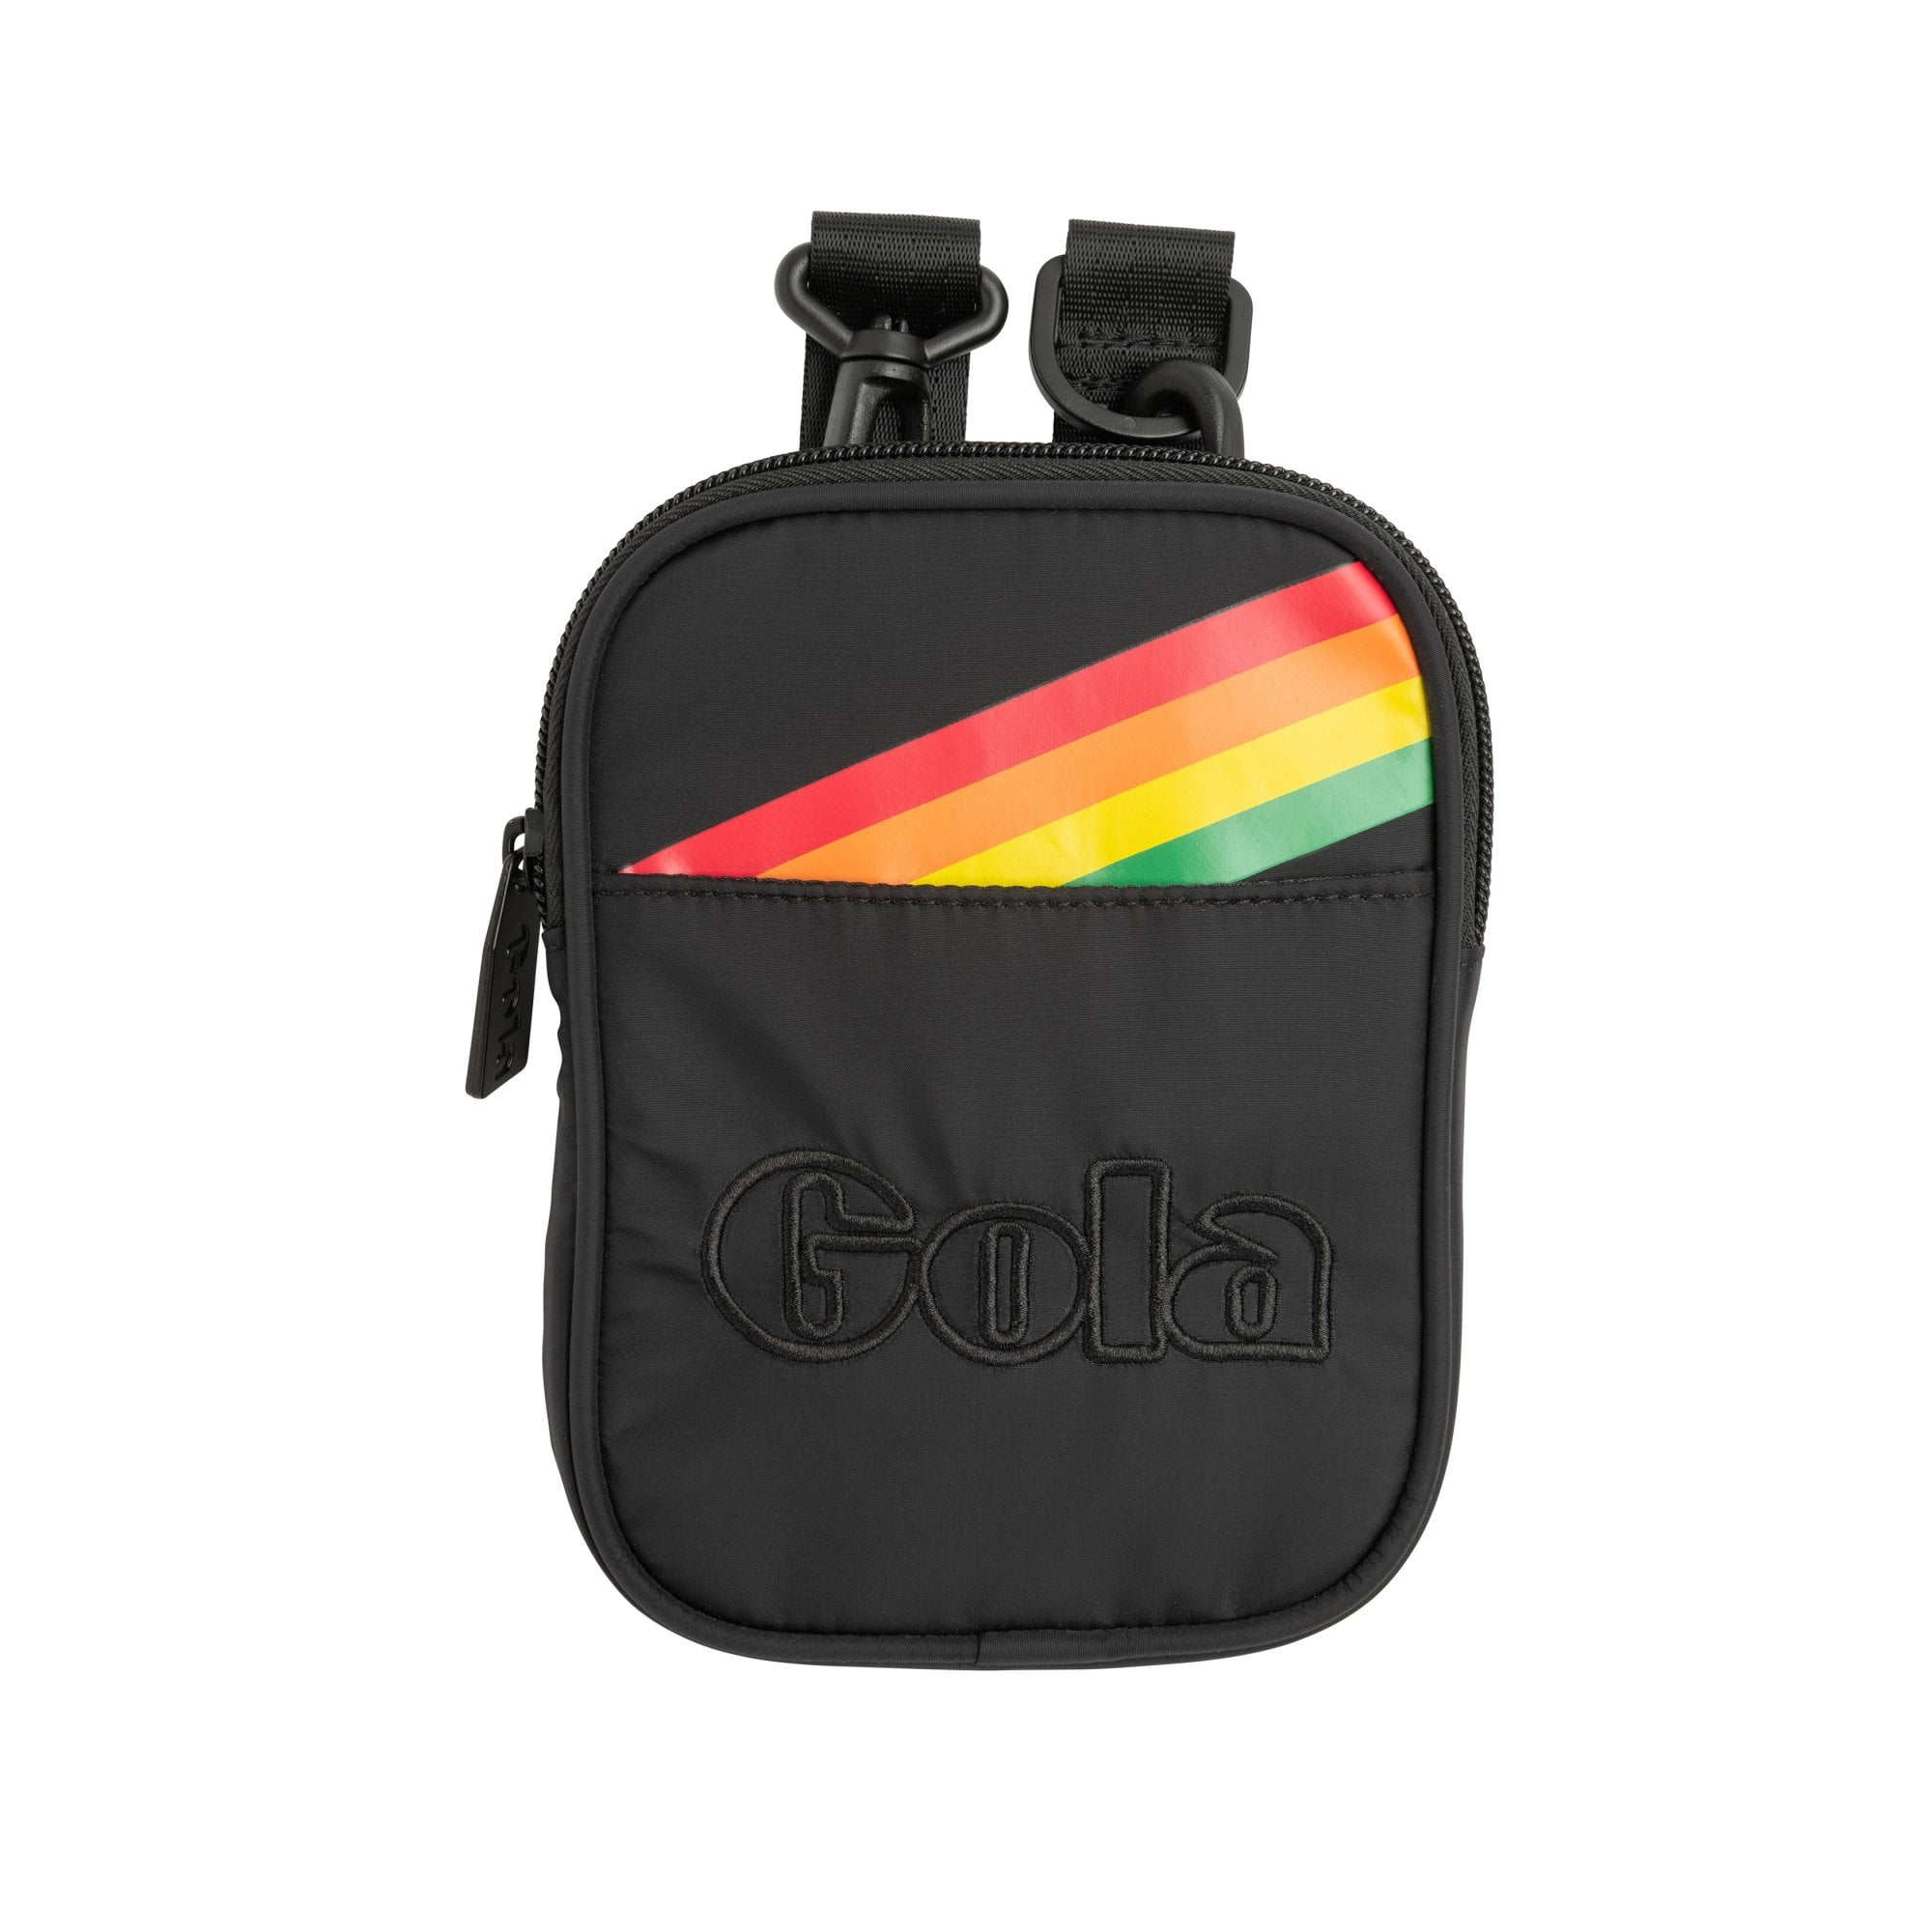 Goodman Rainbow Pocket Bag